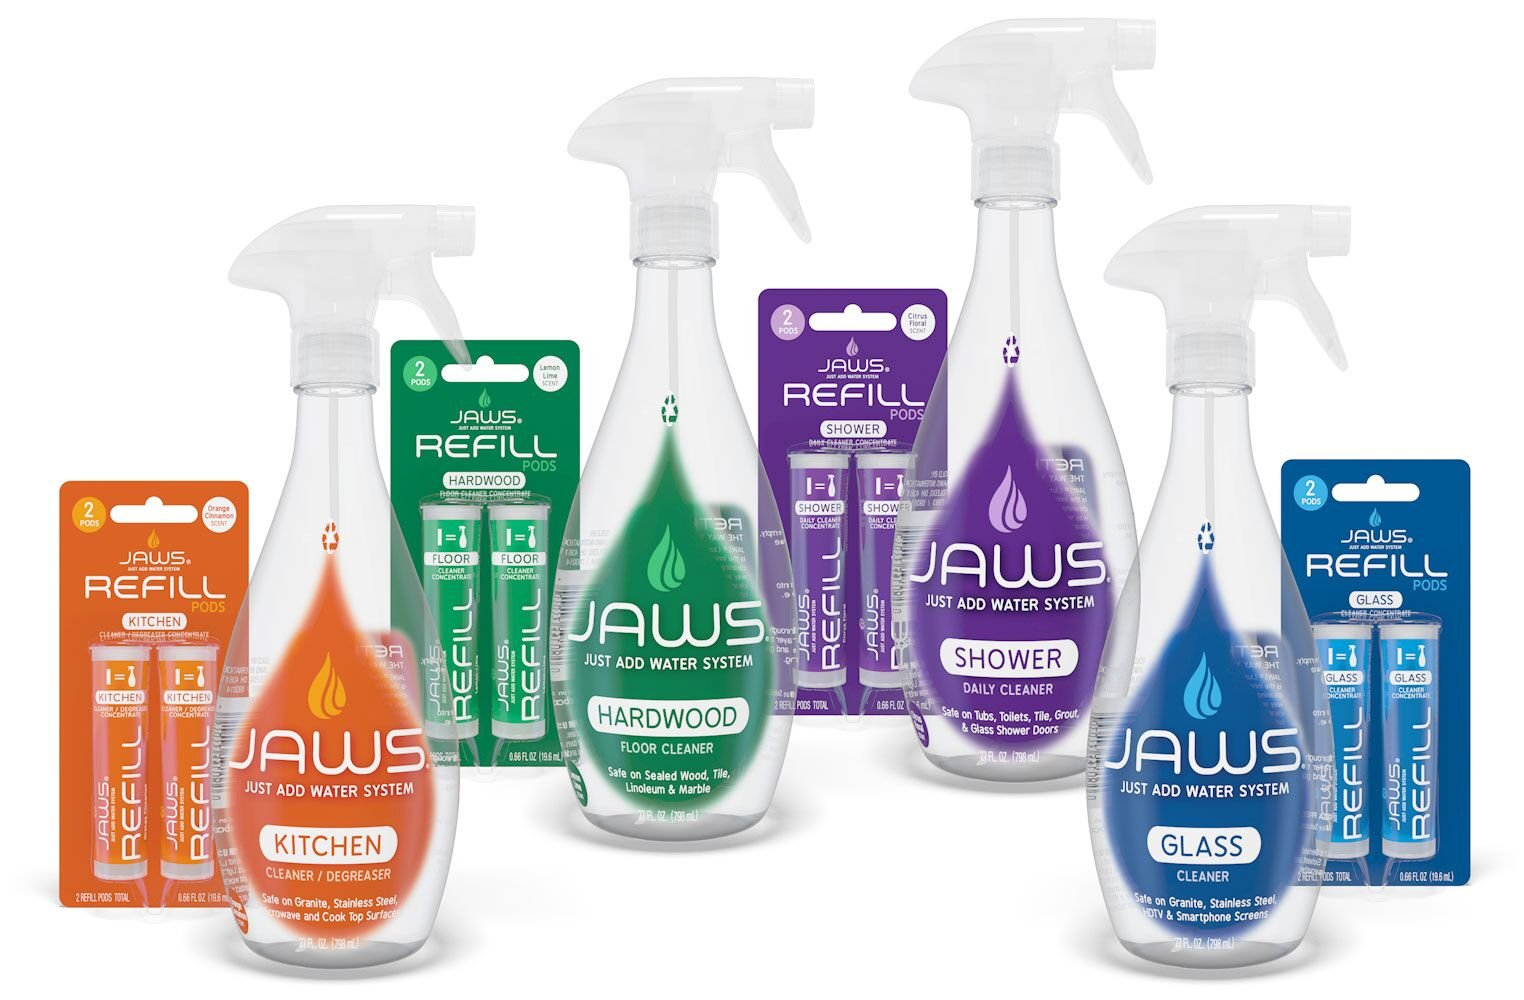 JAWS Home Cleaning Kit | Kitchen, Glass, Shower and Hardwood | 2 Refill Pods of Each Included. Non-Toxic and Eco-Friendly Cleaning Products. Refill and Reuse.